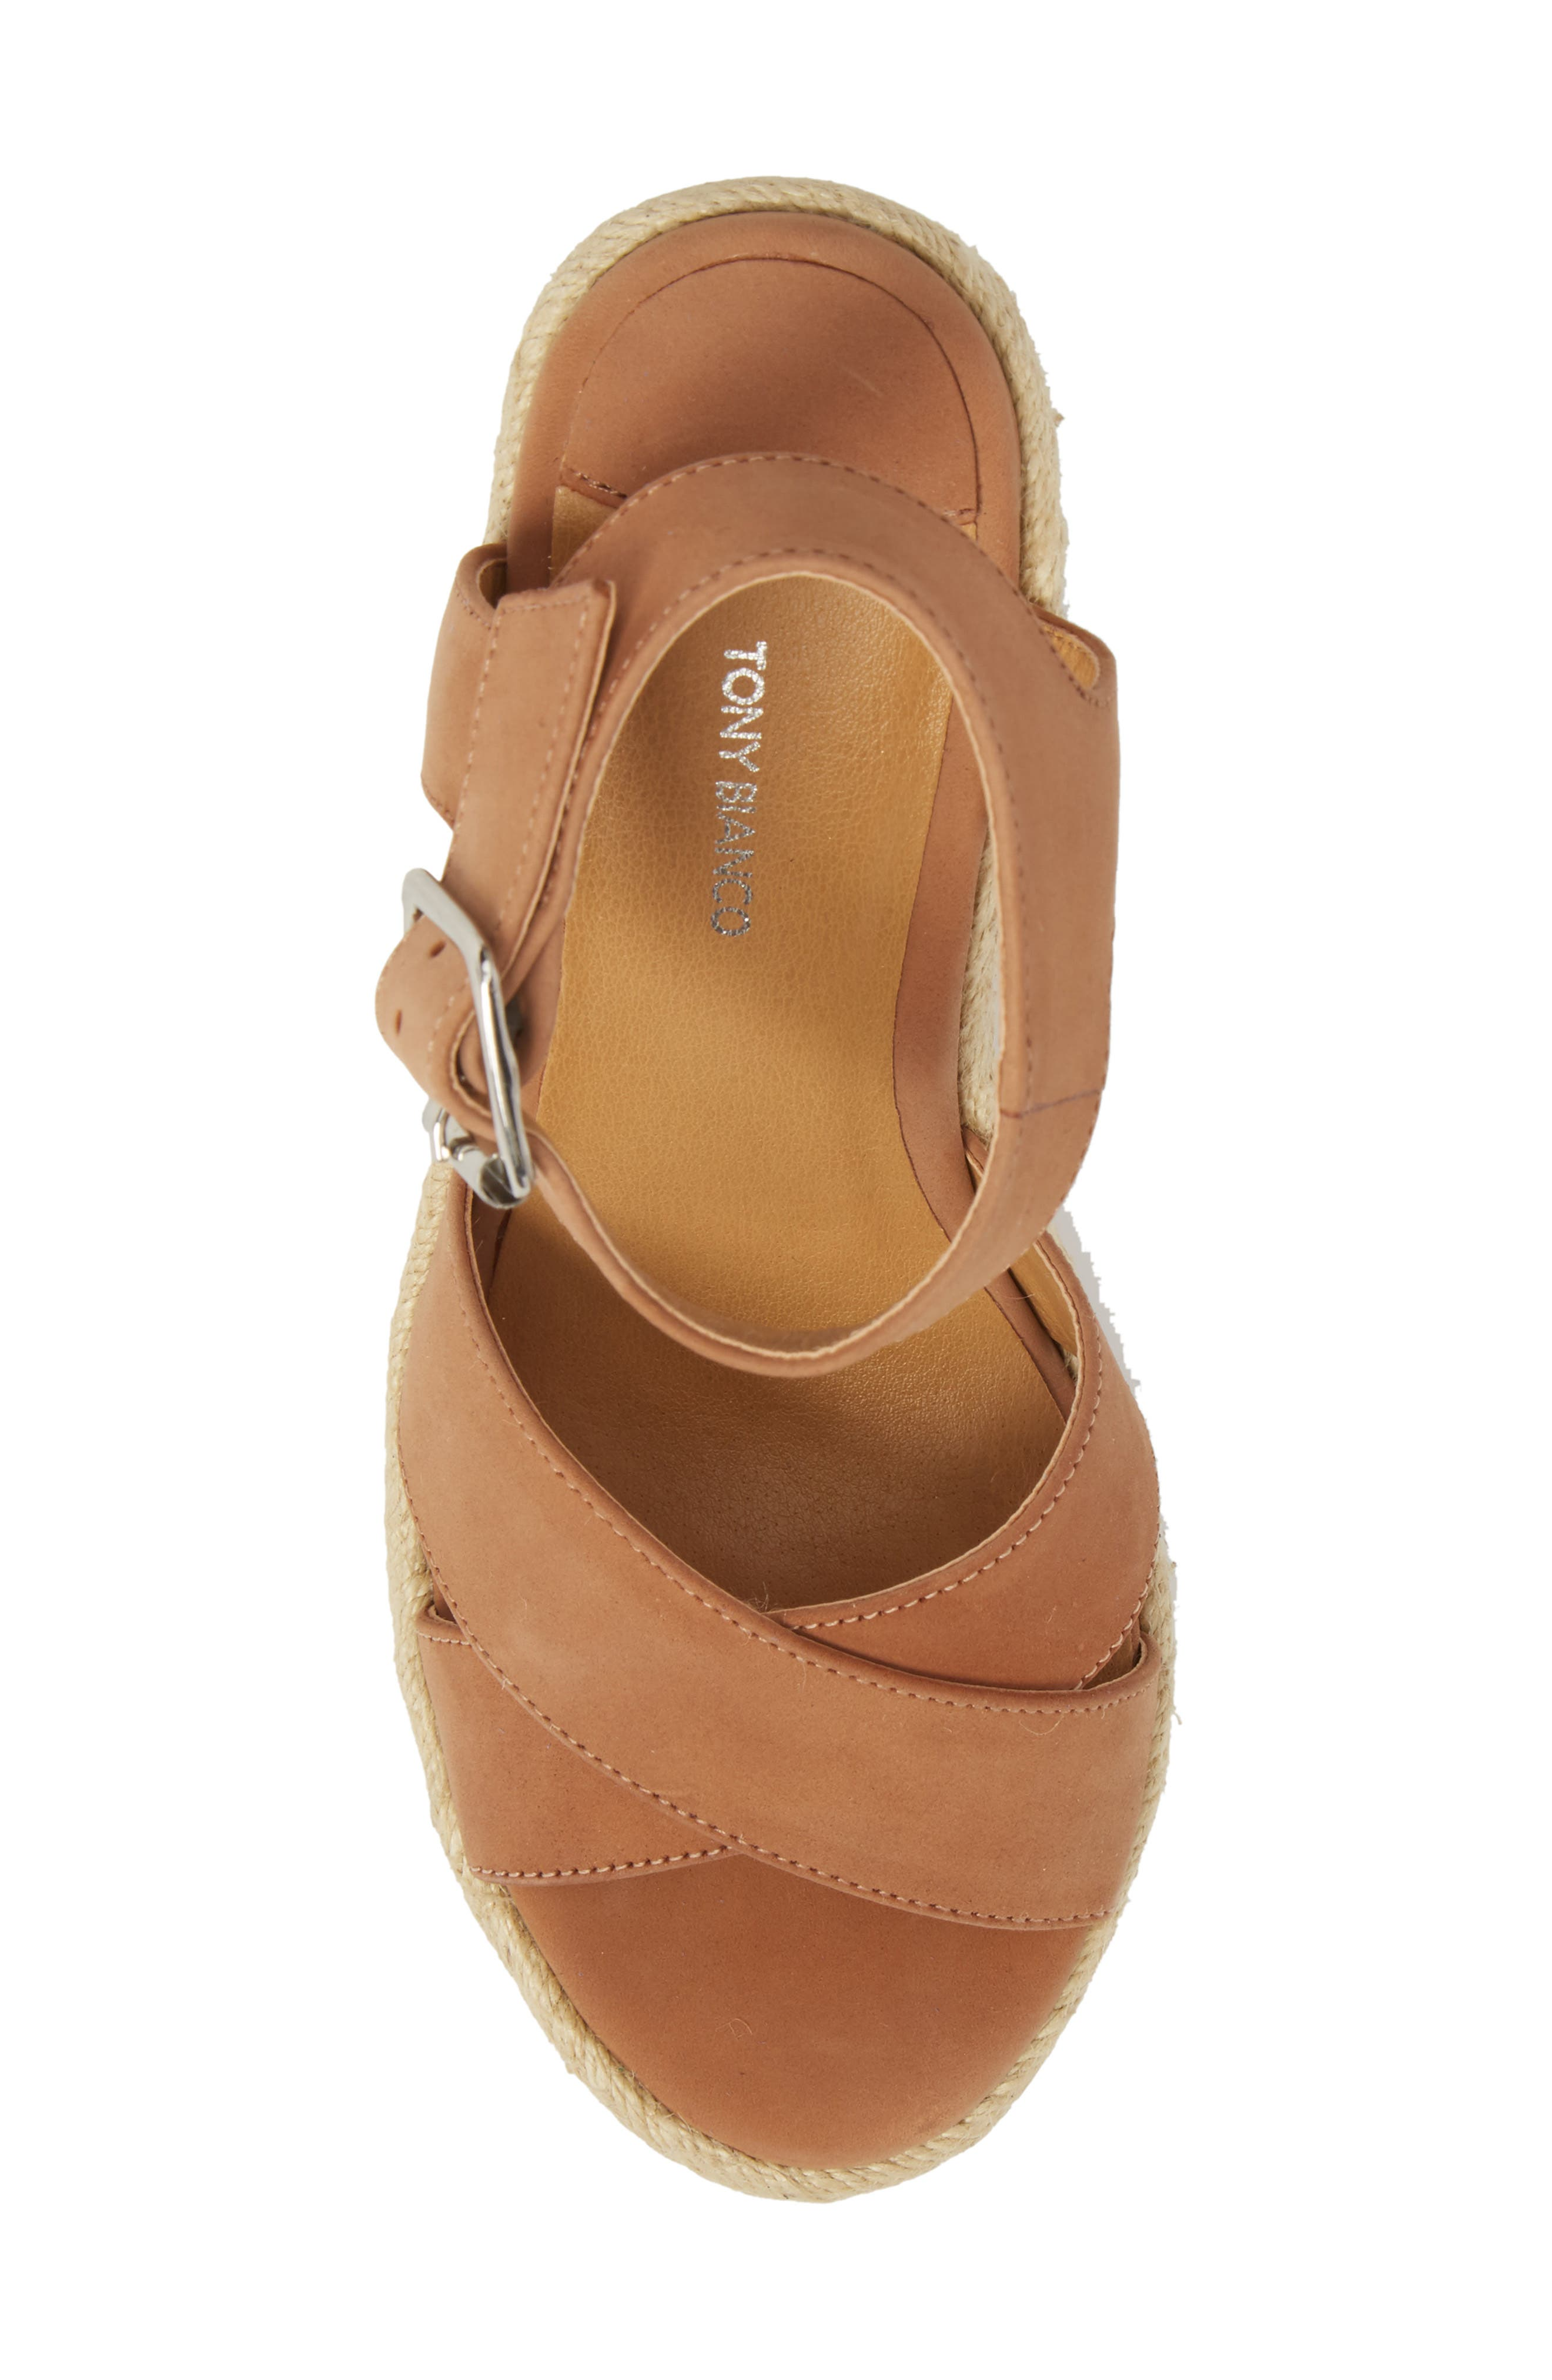 Boston Espadrille Wedge Sandal,                             Alternate thumbnail 5, color,                             CARAMEL PHOENIX LEATHER